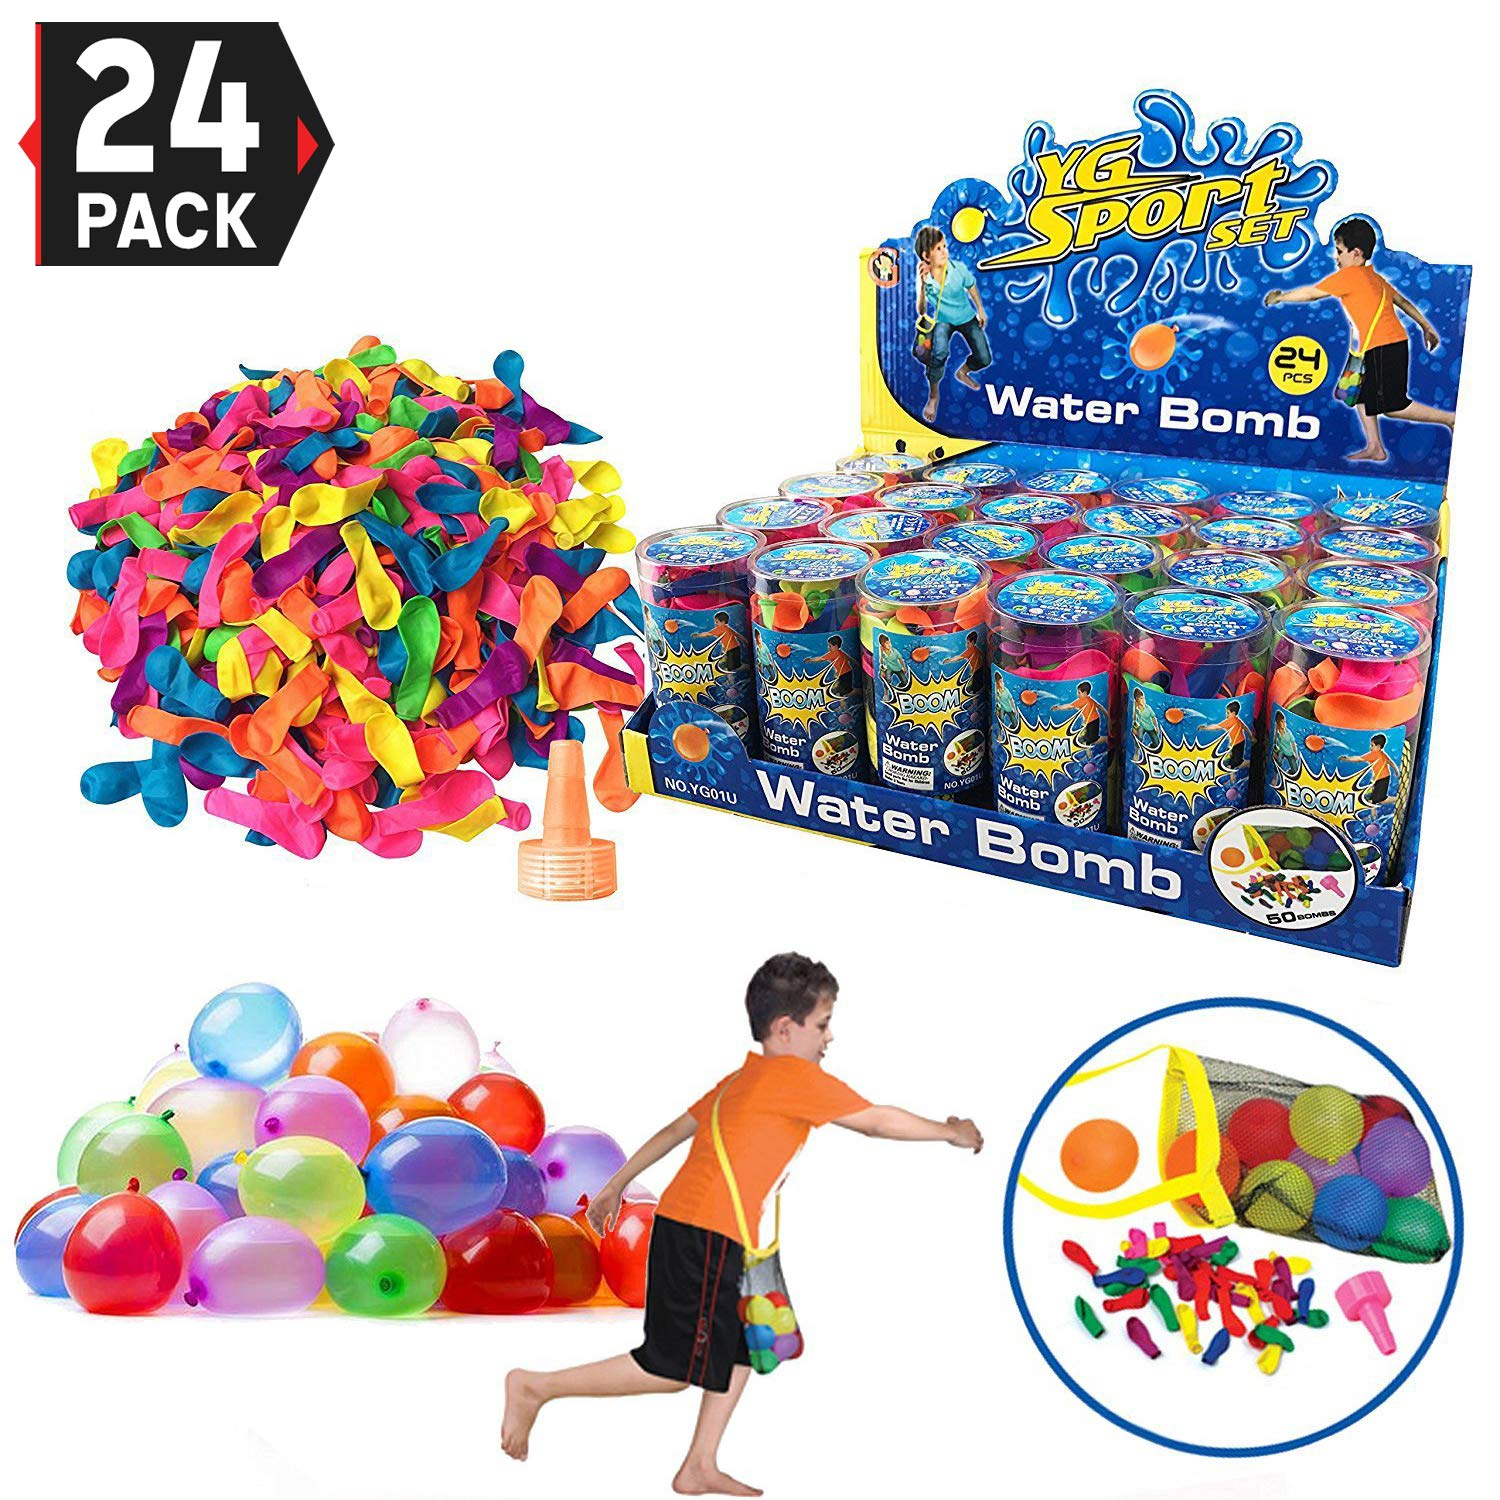 24 Pack - Refill Kits of Latex Water Balloons Bomb - Summer Water Balloon Fight, Party Favors, Sports Fun for Kids and Adults - Multicolored with Nozzle and Carry Bag (1200 Count) by Liberty Imports (Image #1)